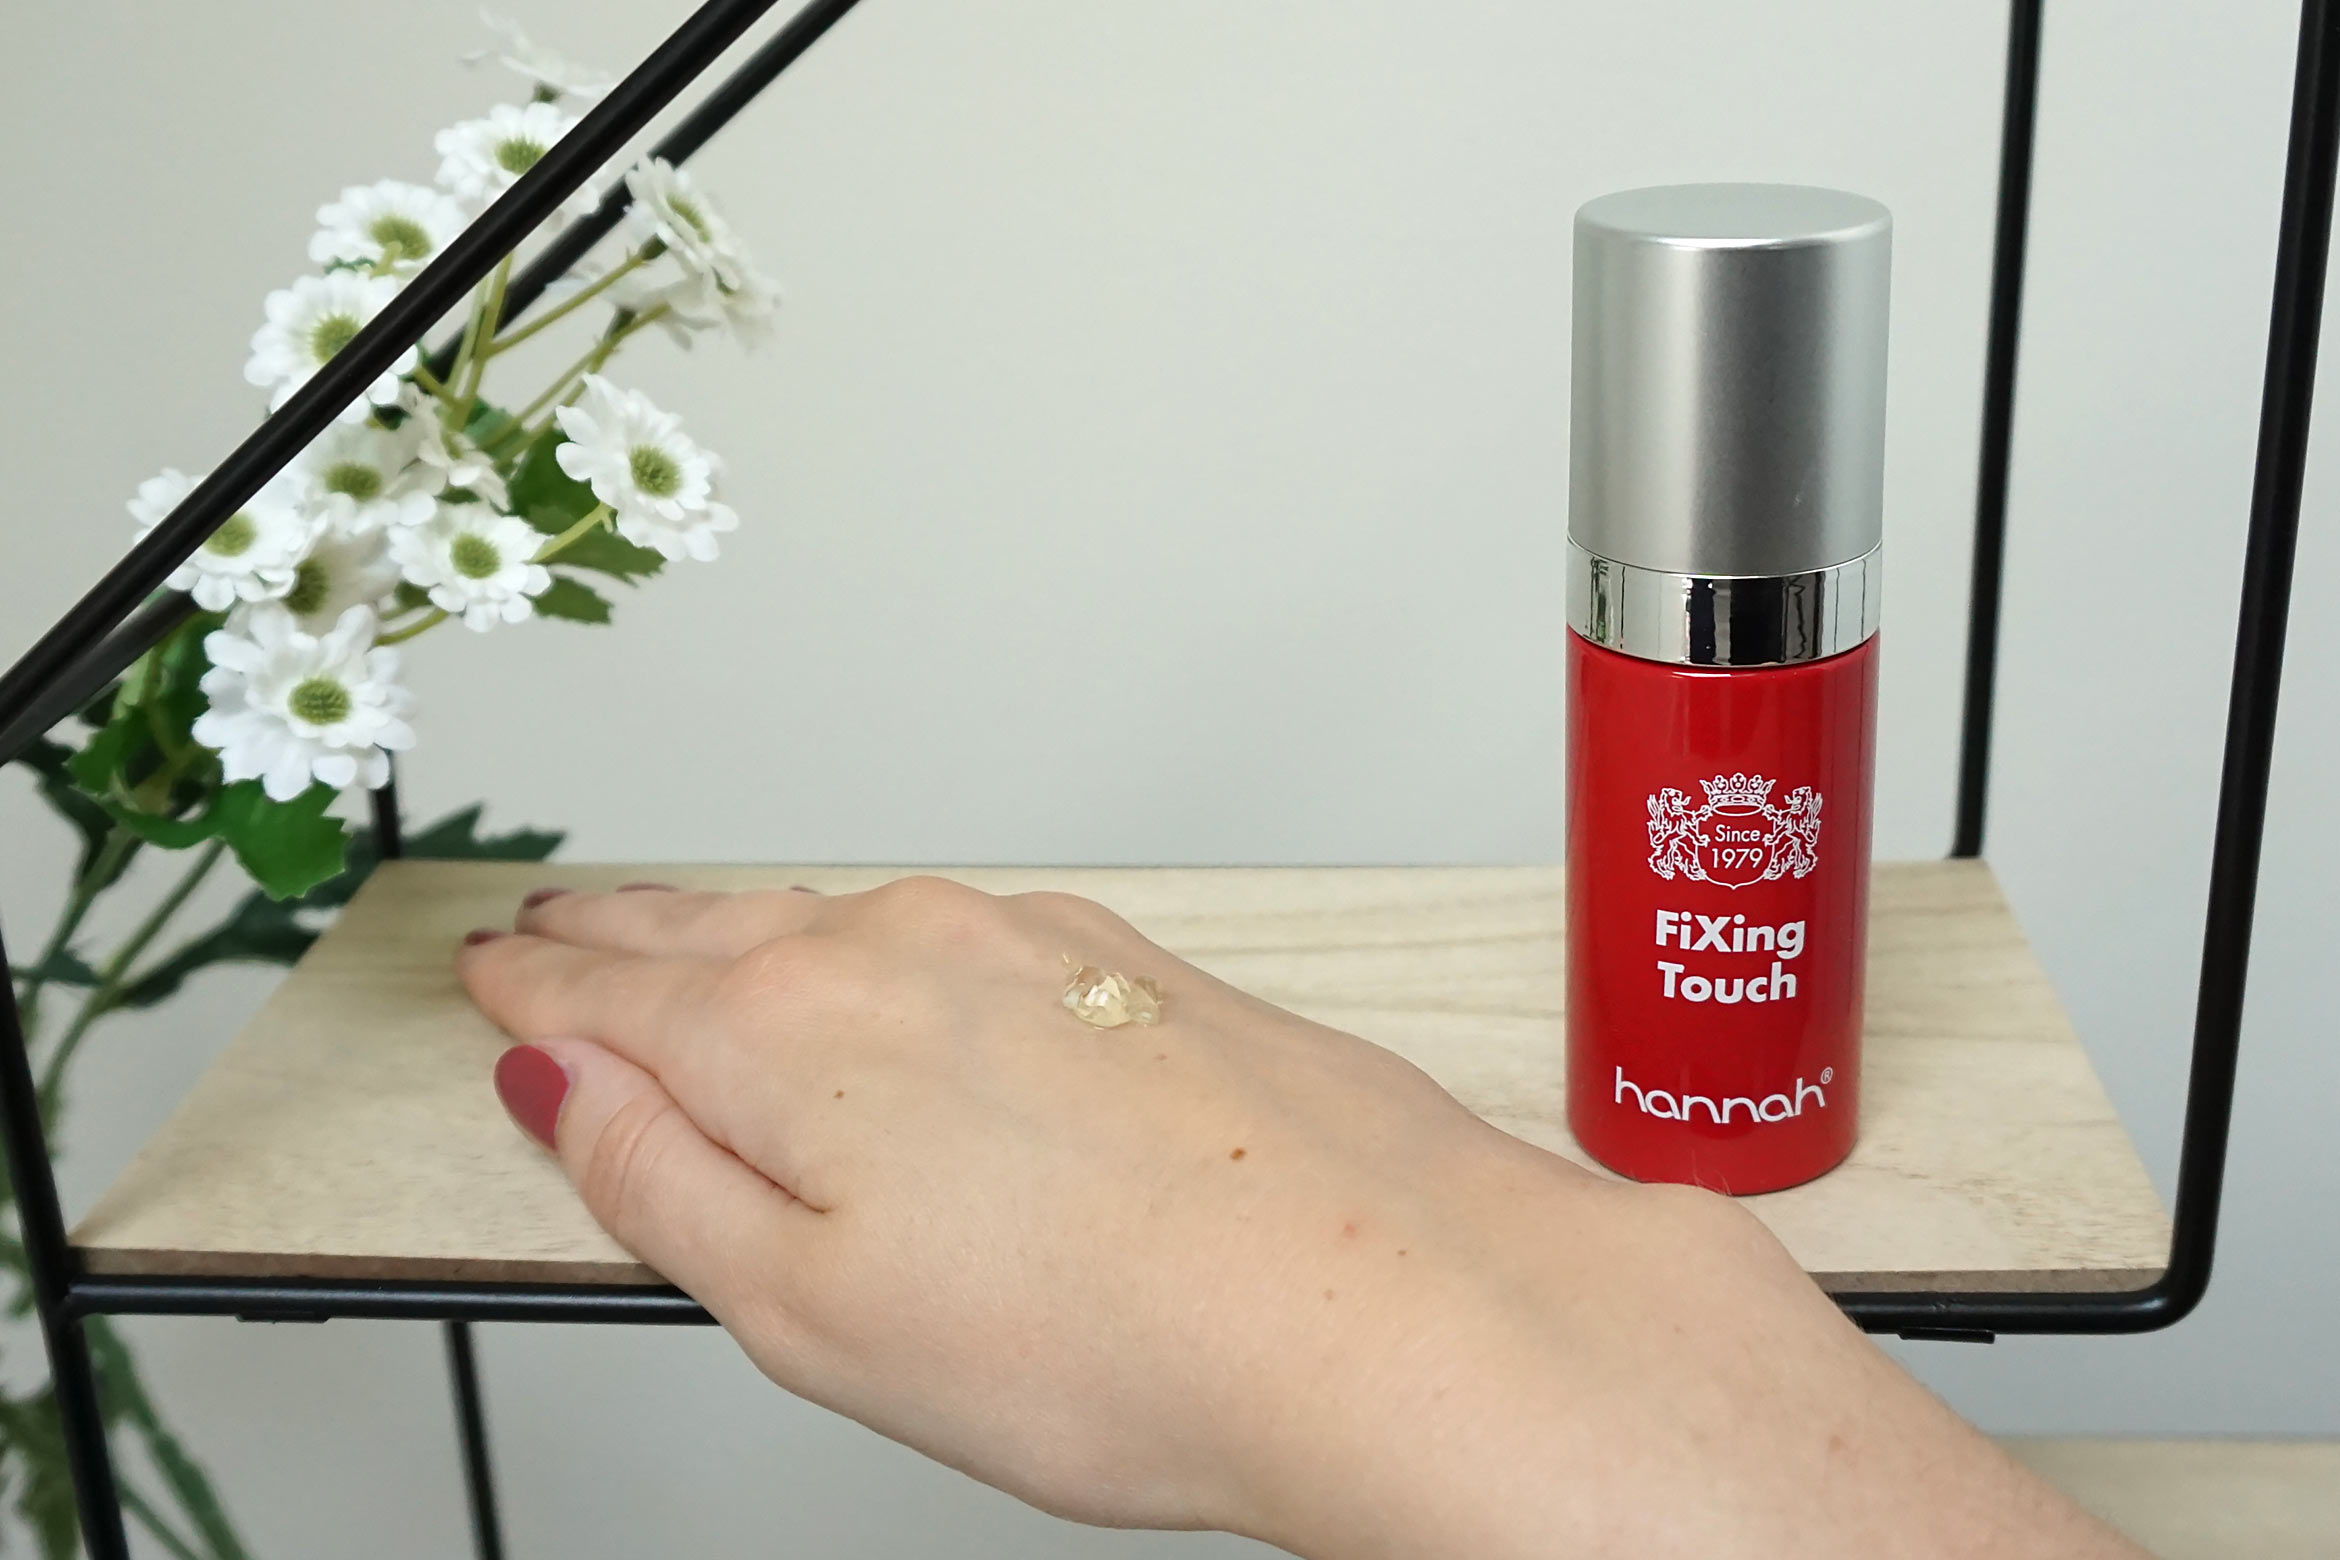 Hannah-FiXing-Touch-review-2